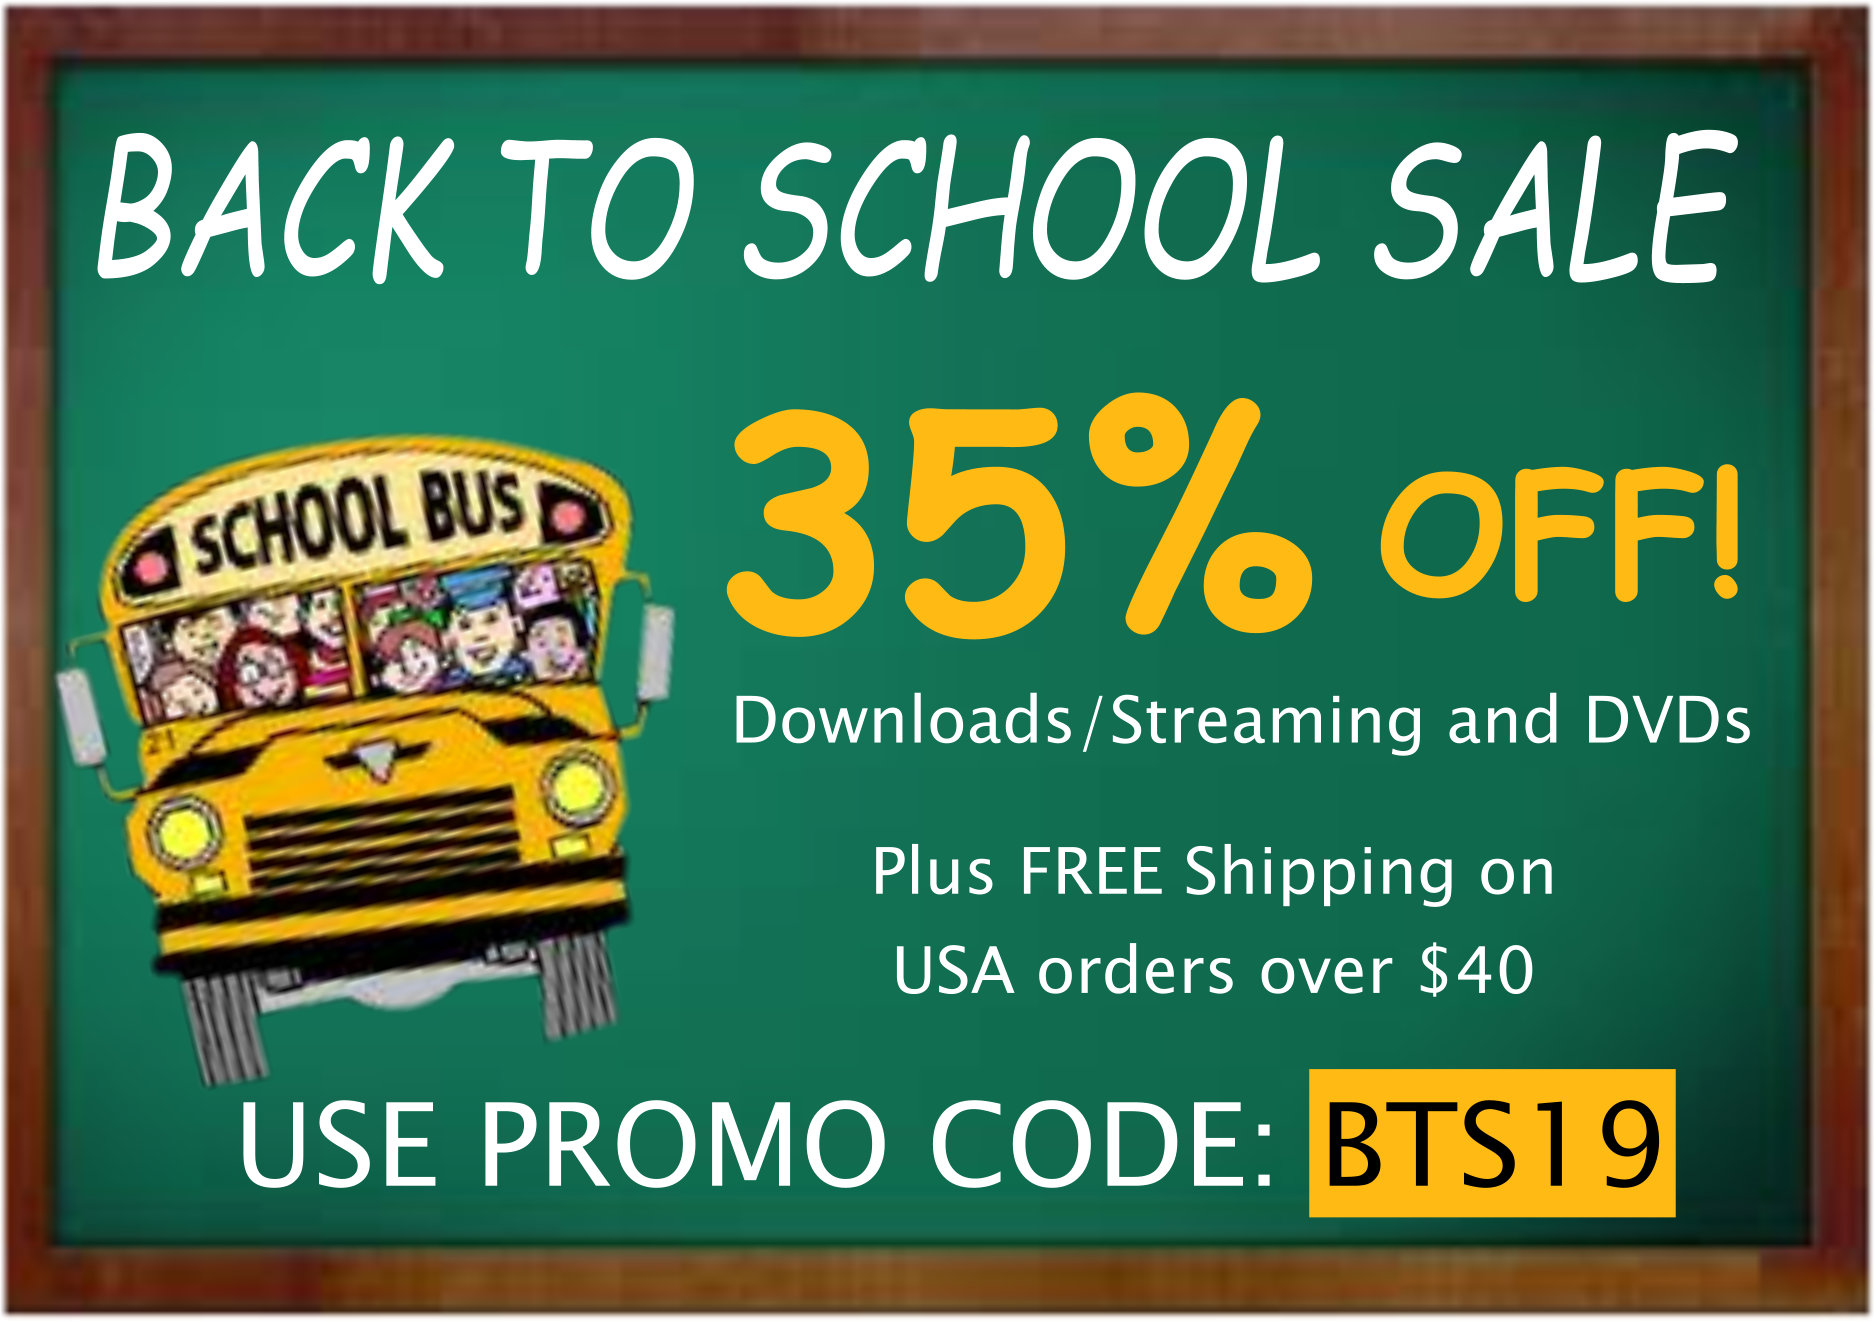 back-to-school-sale-2019-600w